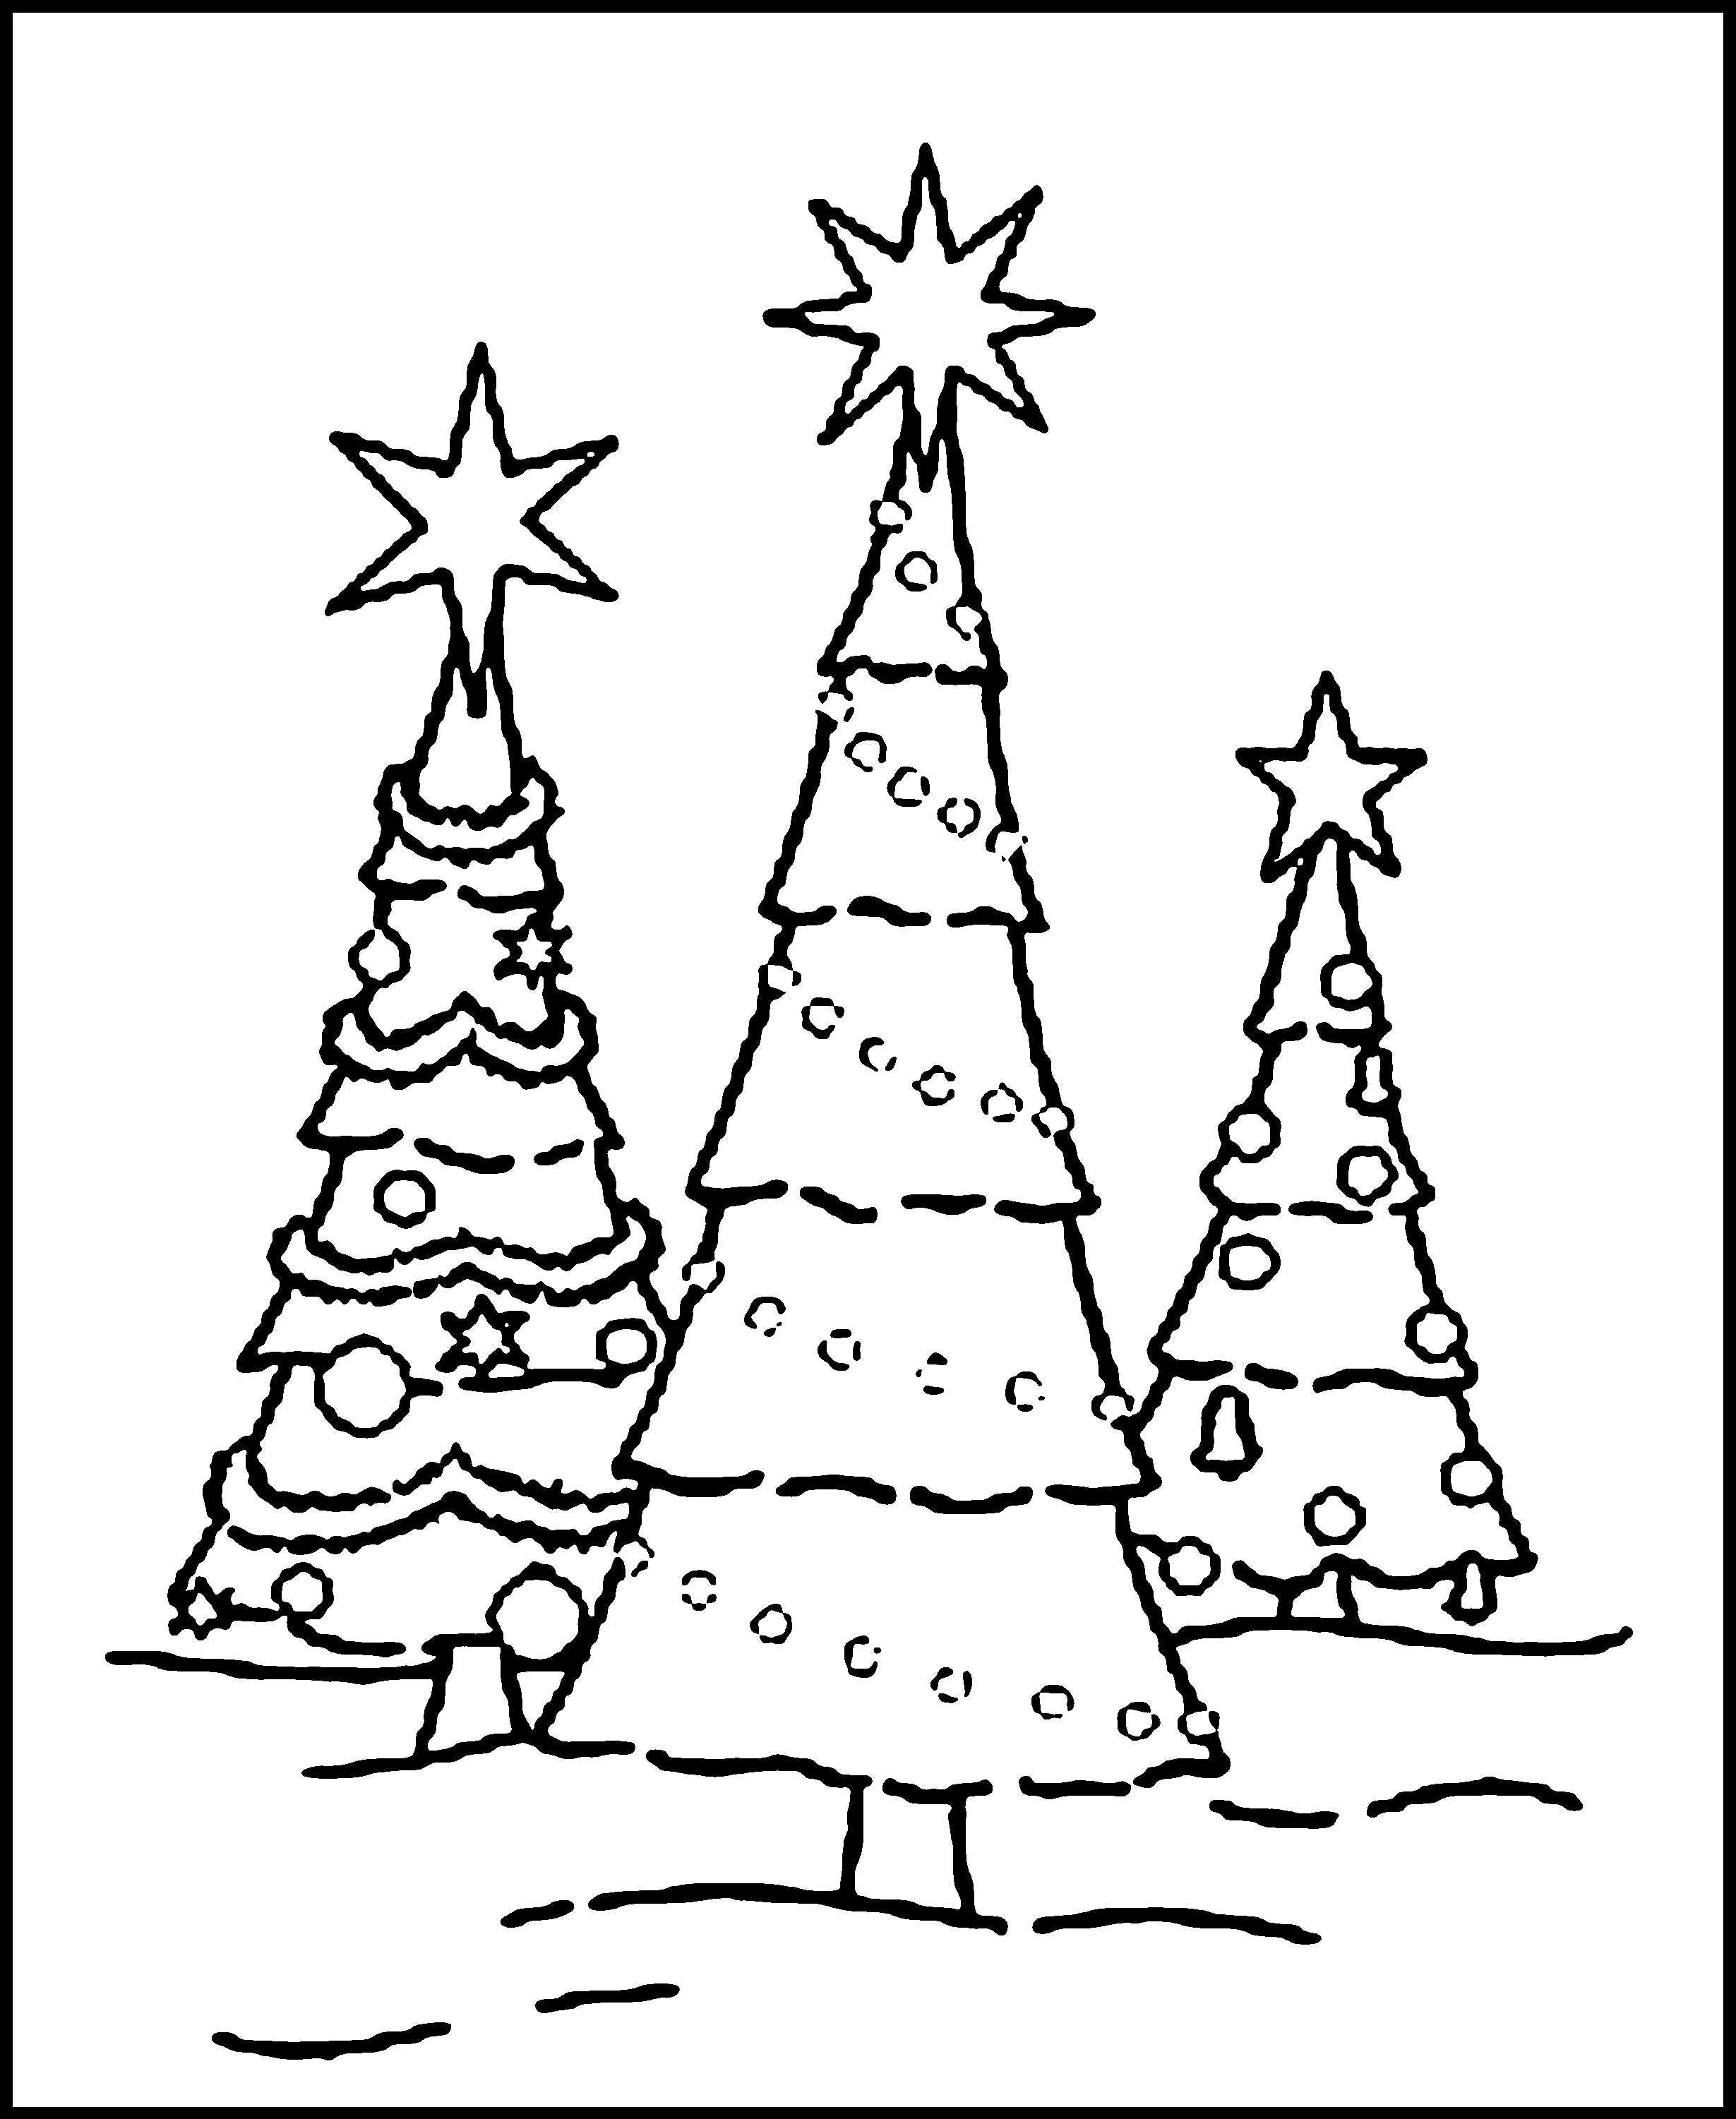 coloring pages for christmas free printable ongarainenglish christmas coloring sheets free printable pages christmas for coloring